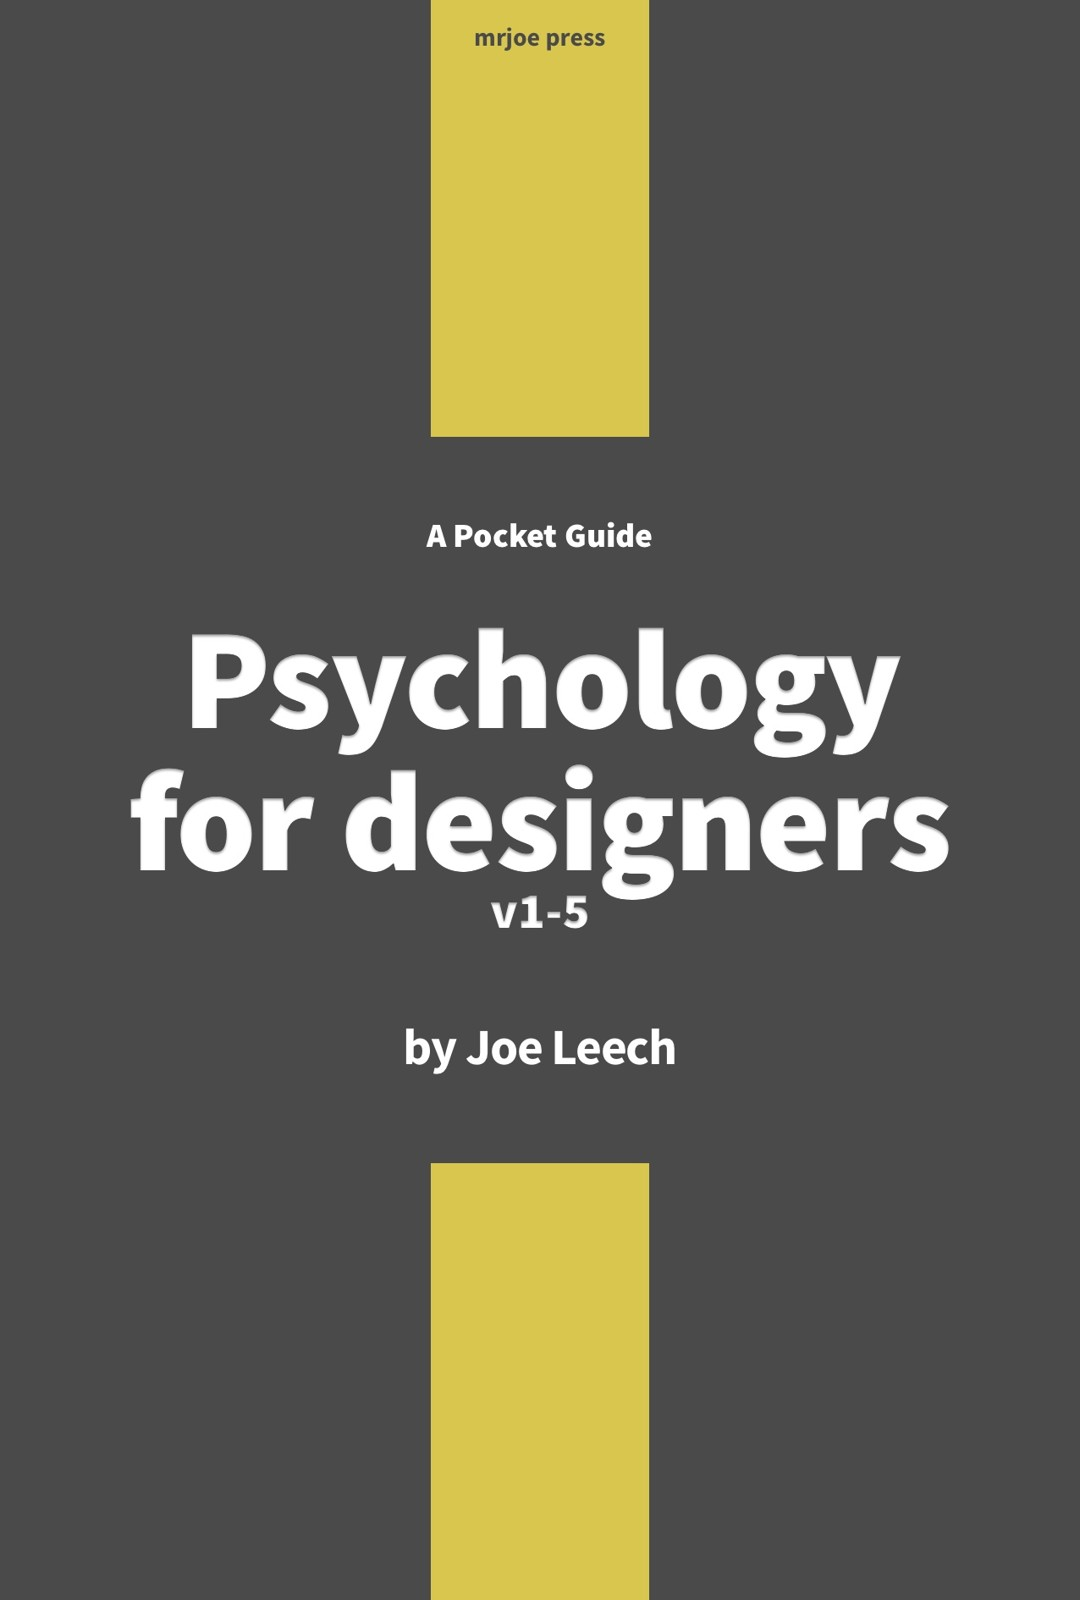 psychology for designers